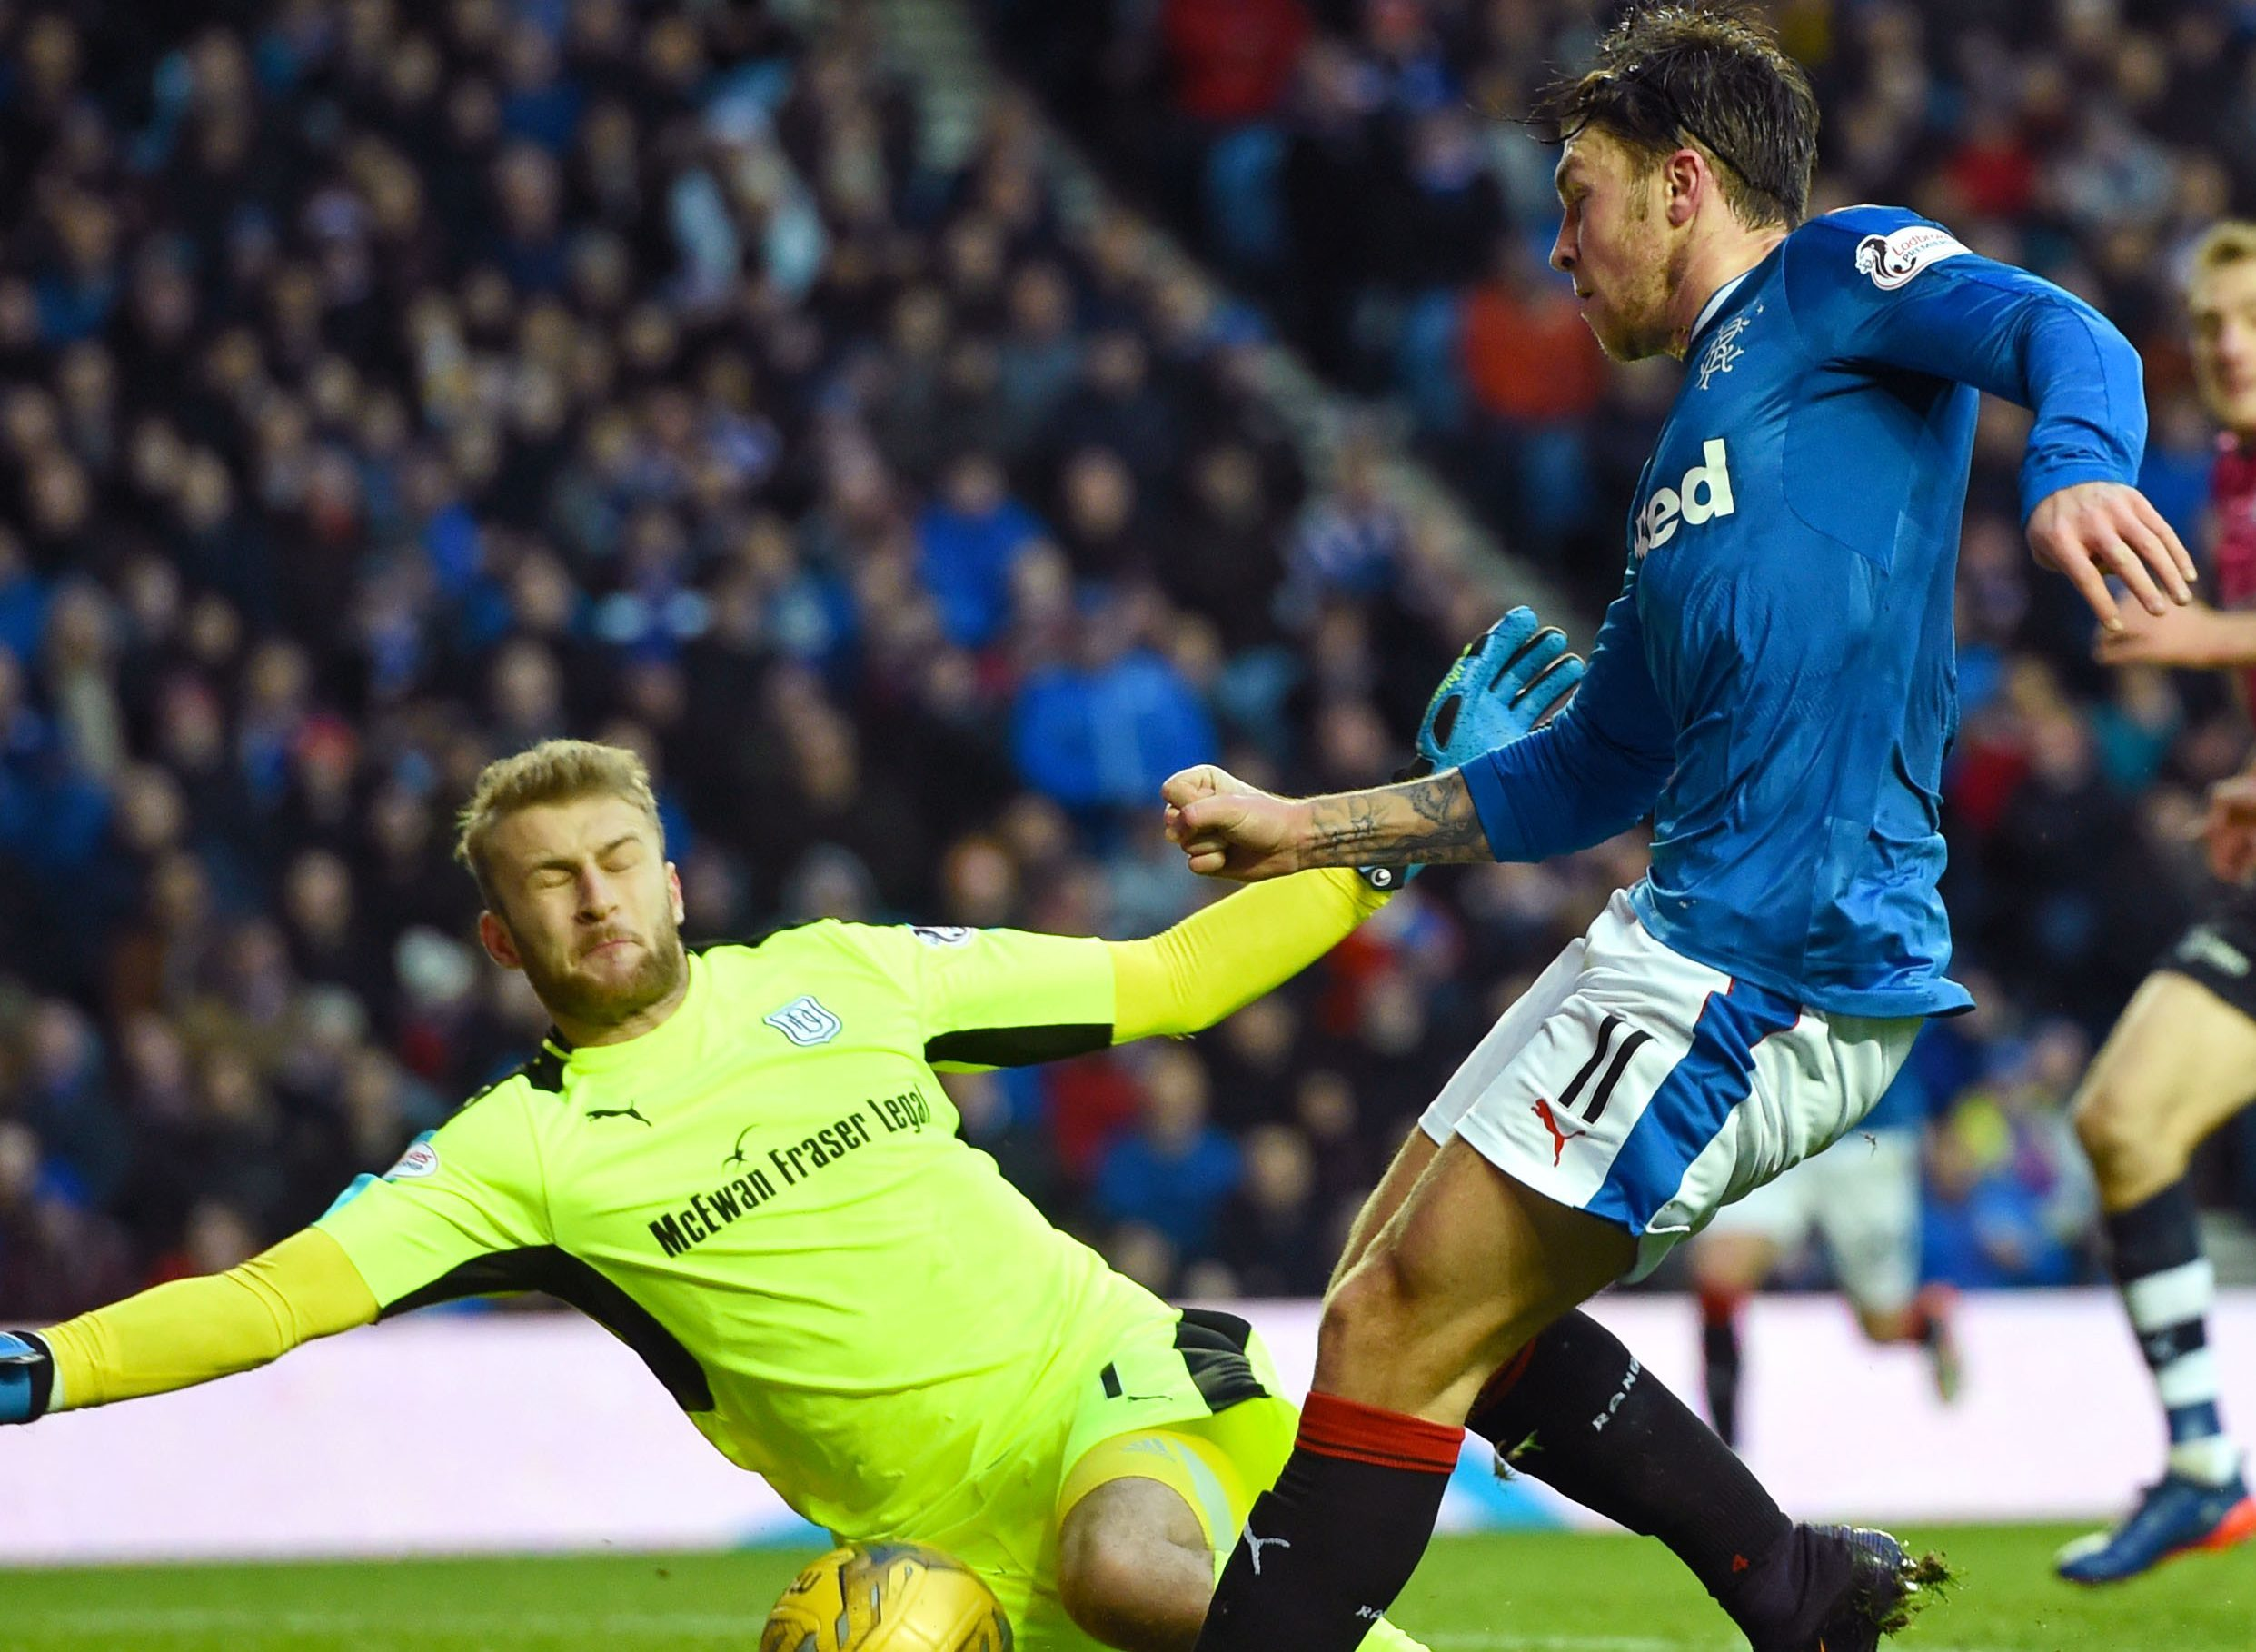 Scott Bain in action at Ibrox.